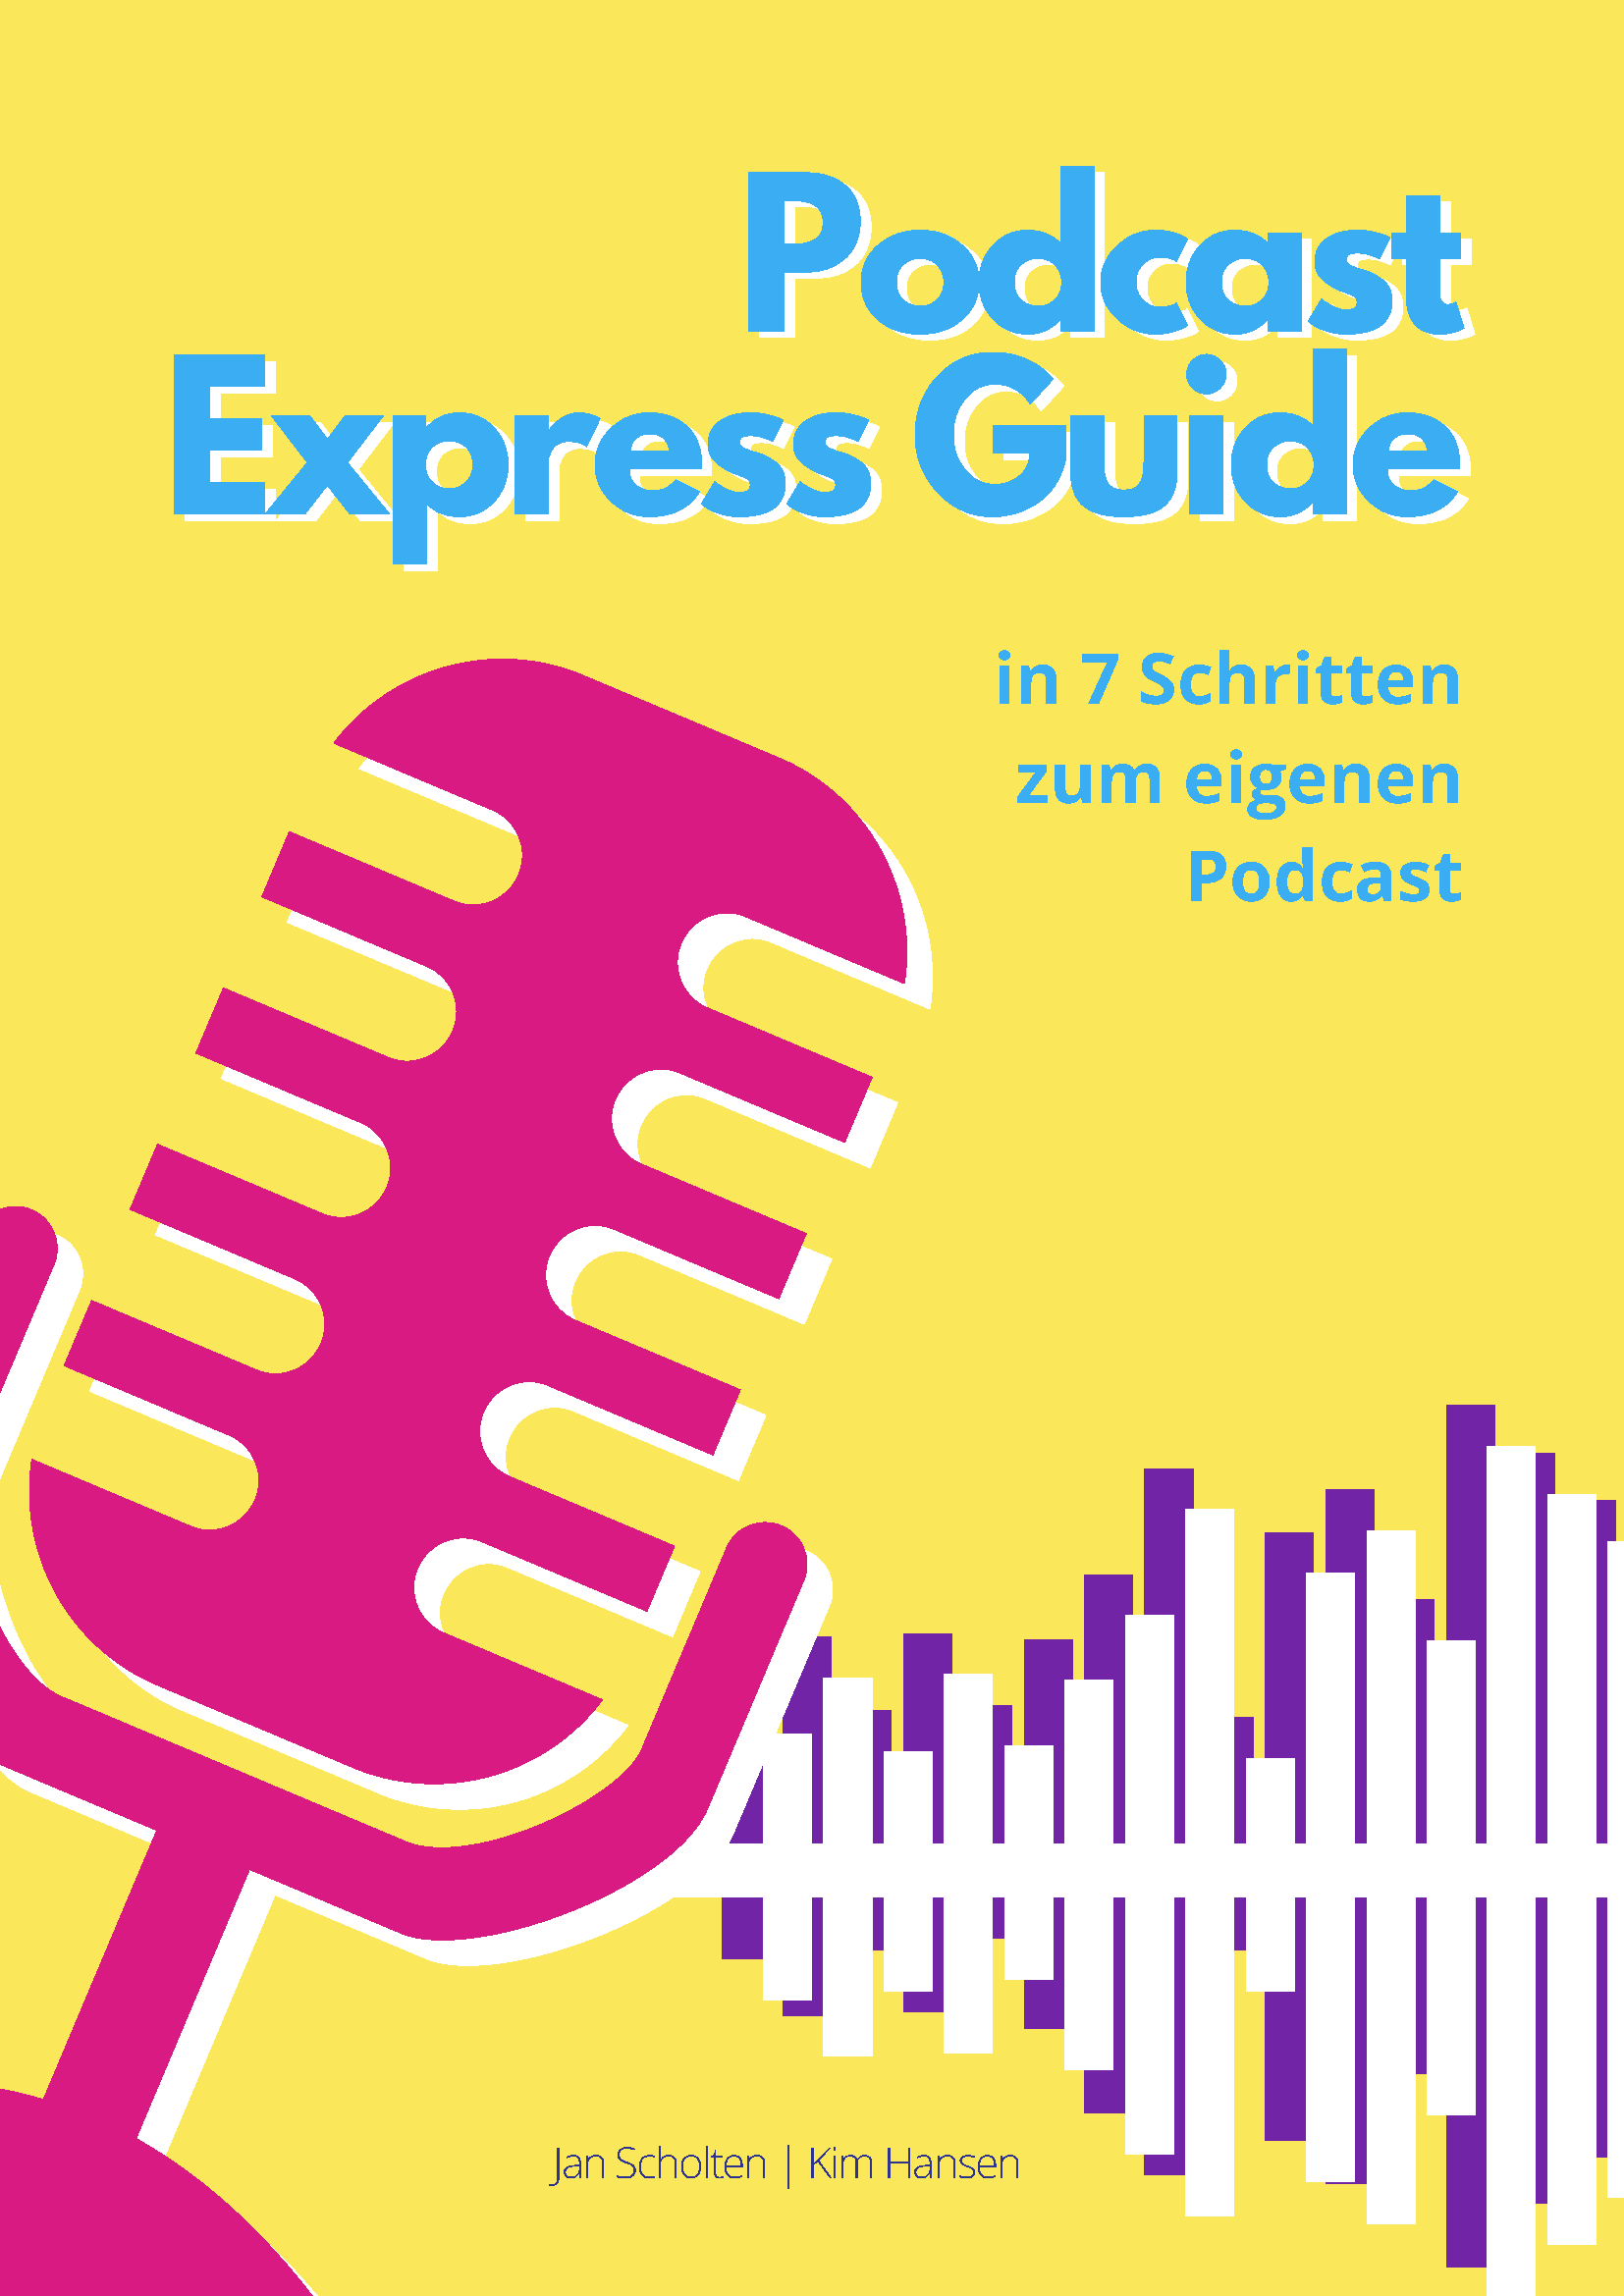 Podcast Express Guide: Titelseite